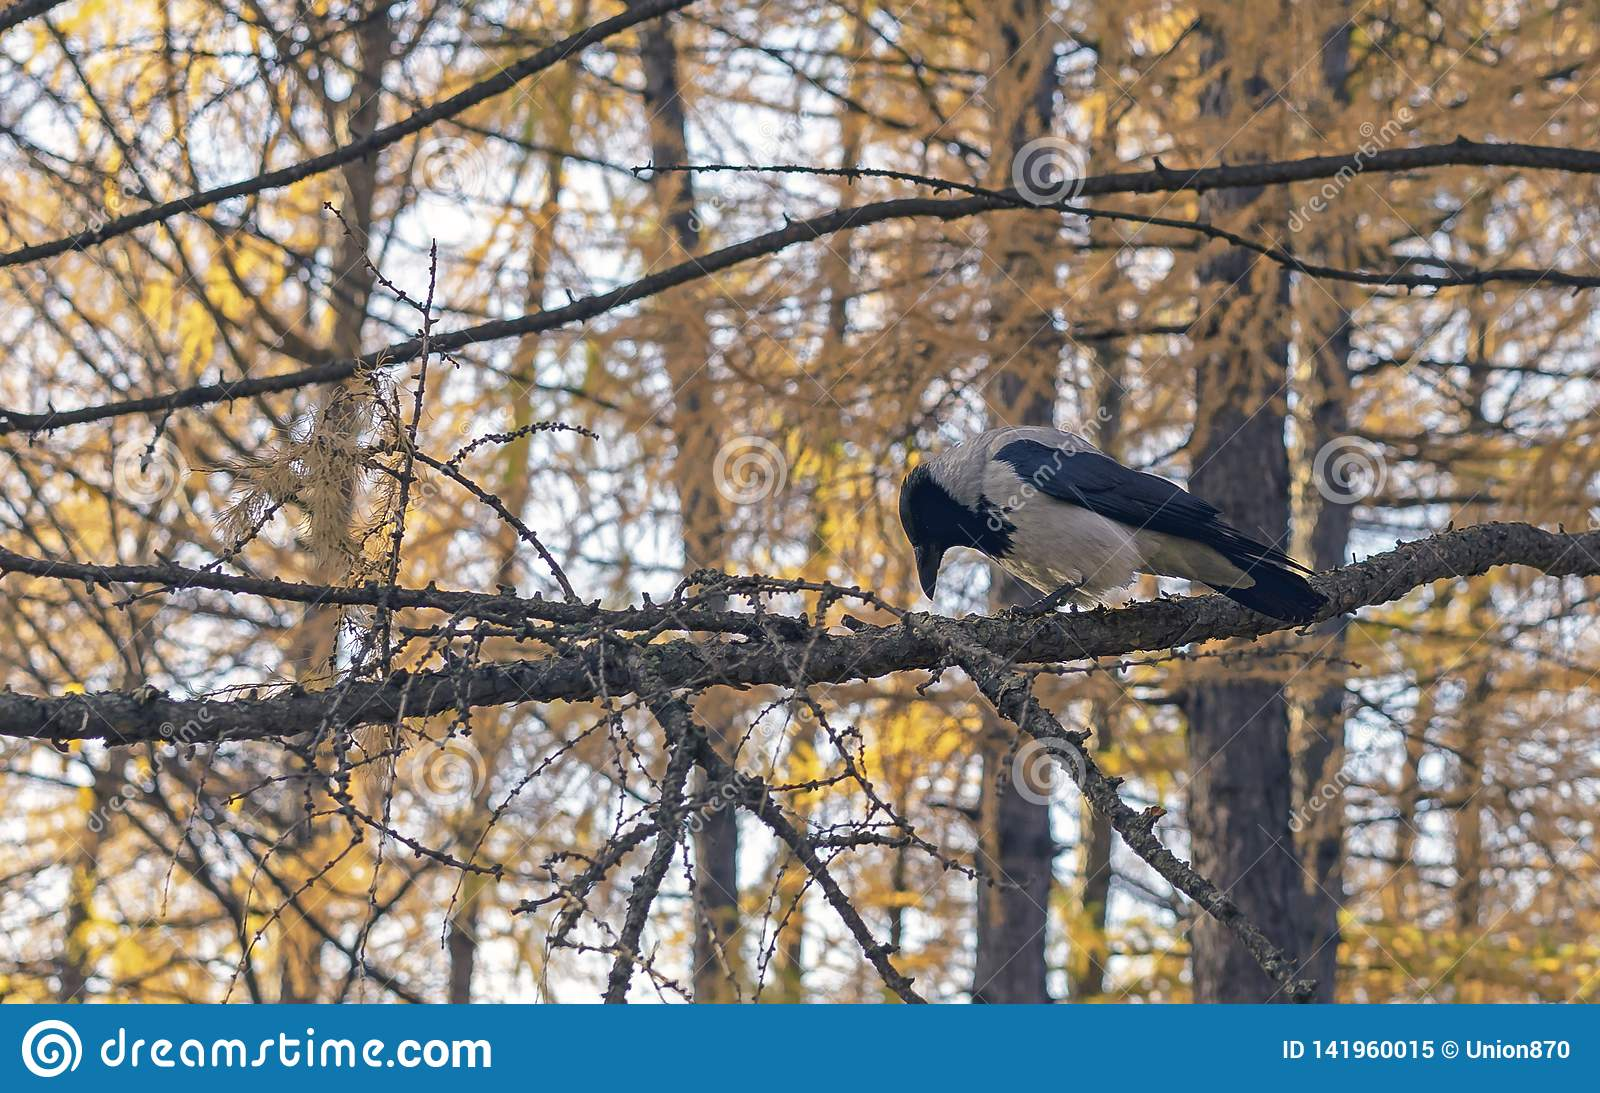 A crow sits on a tree branch in the autumn forest